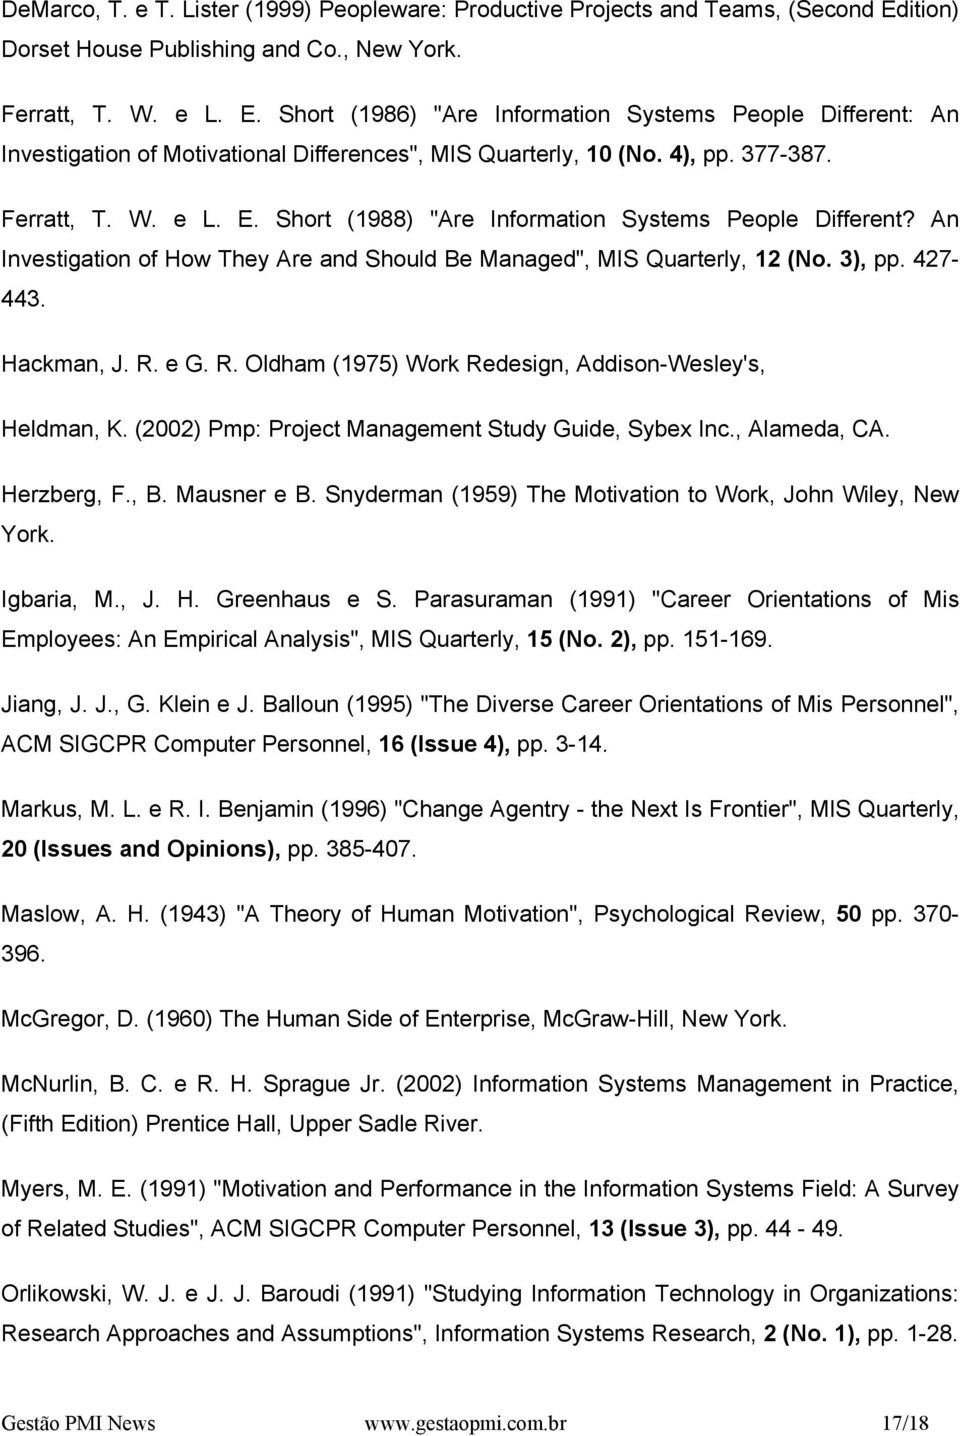 "4), pp. 377-387. Ferratt, T. W. e L. E. Short (1988) ""Are Information Systems People Different? An Investigation of How They Are and Should Be Managed"", MIS Quarterly, 12 (No. 3), pp. 427-443."